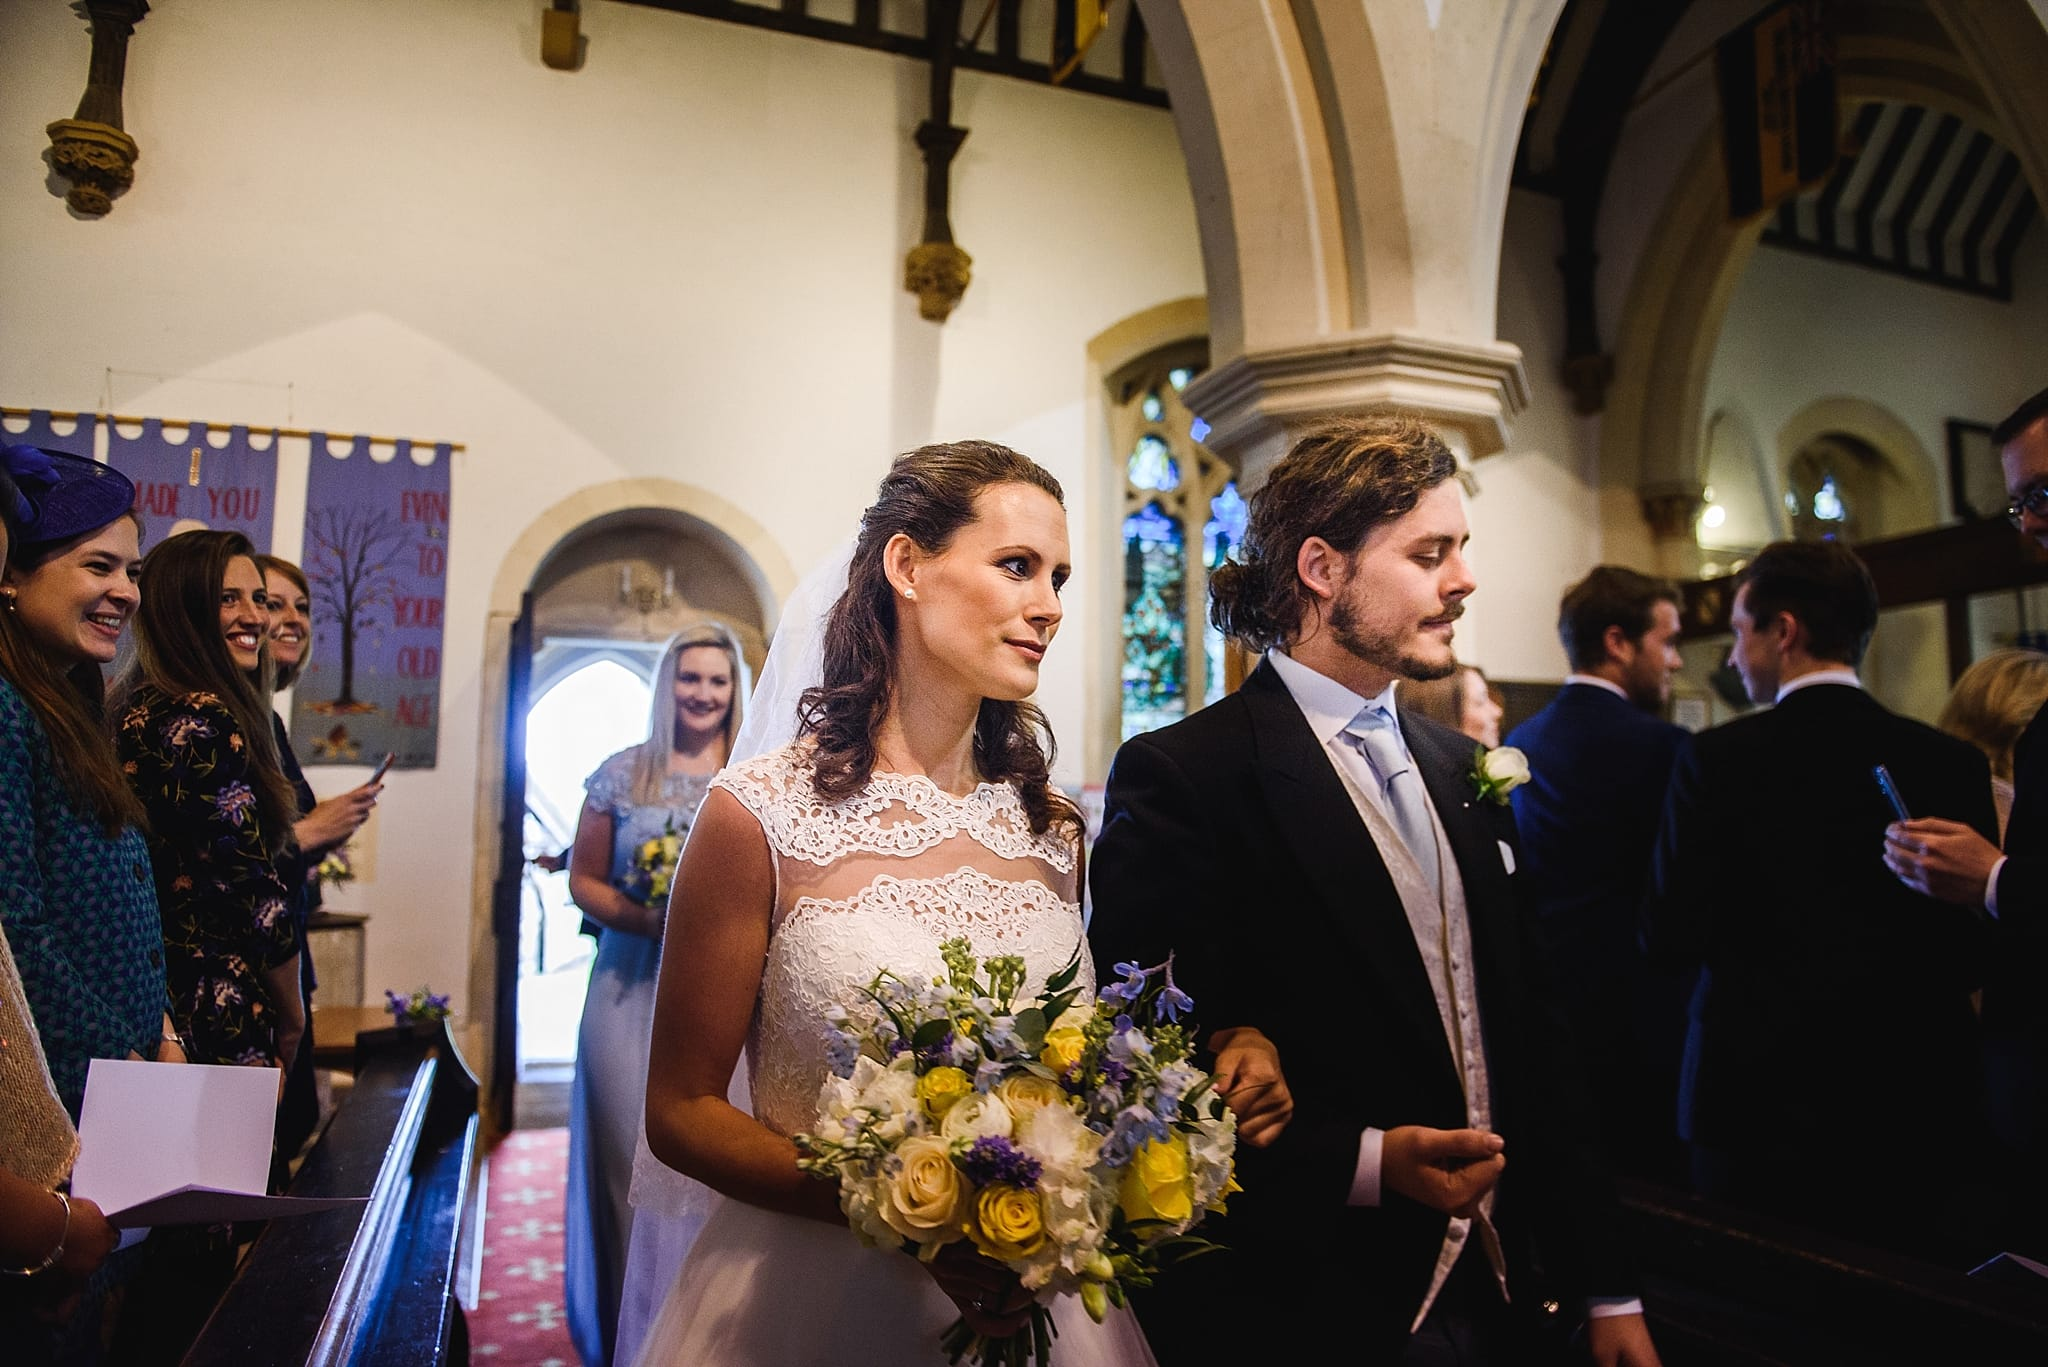 Bride walking down the aisle at St Swithins church, Bathford